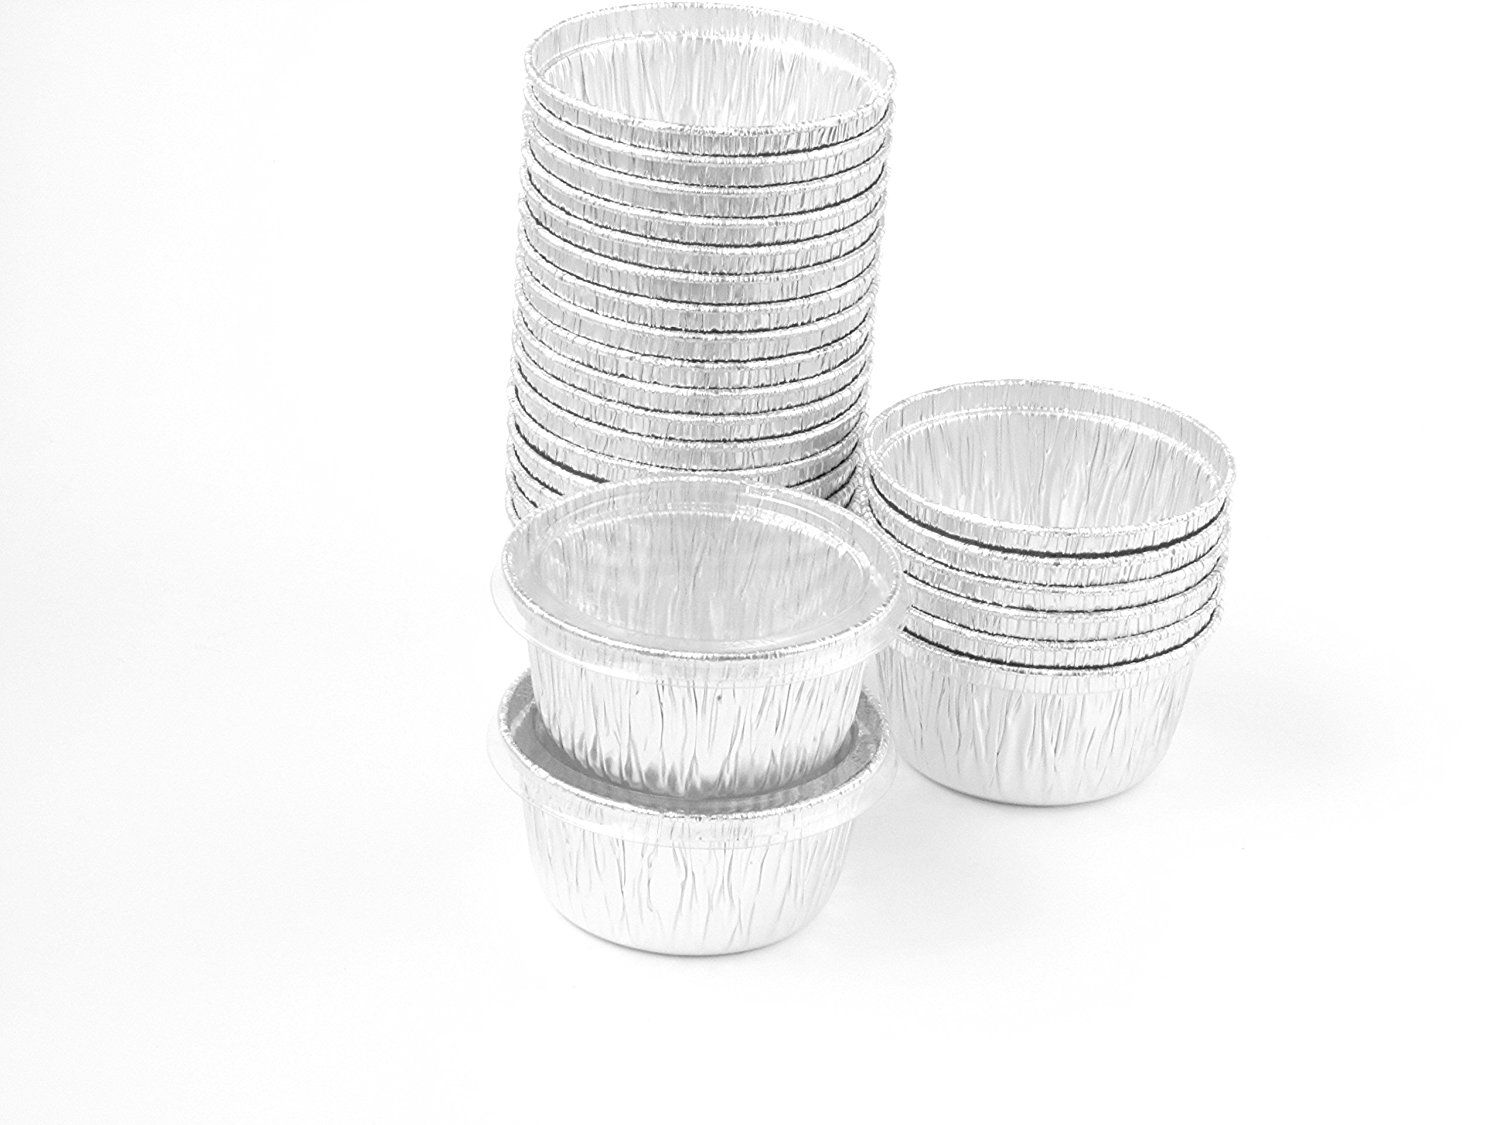 Disposable Aluminum 4 Oz Ramekins Foil Cups W Clear Snap On Lid Number1400p 250 Find Out More Details Ramekins And Baking Ramekins Cup Lidded